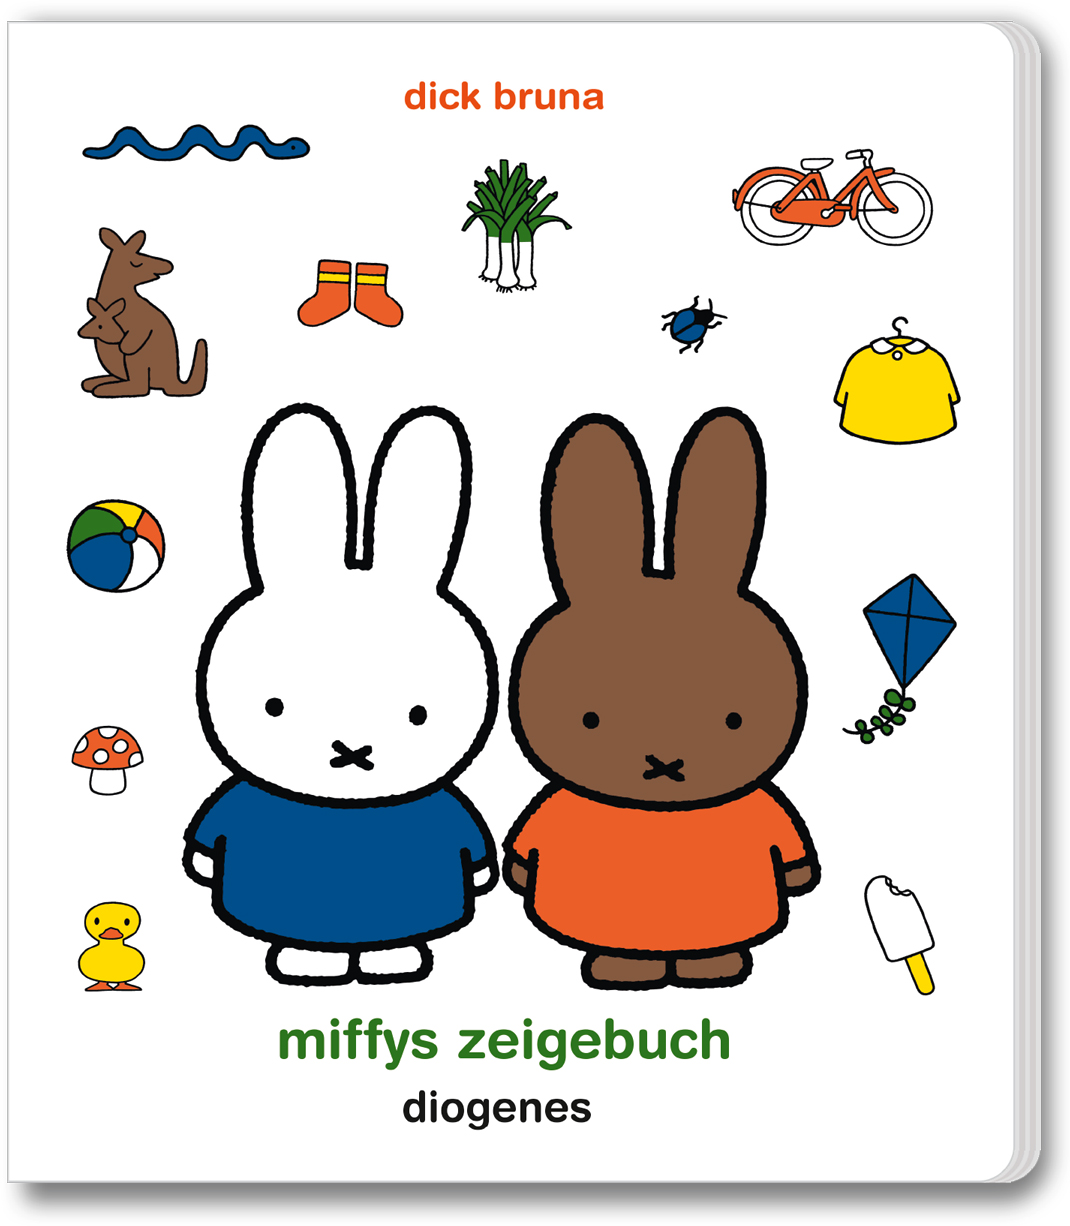 Miffy @Diogenes